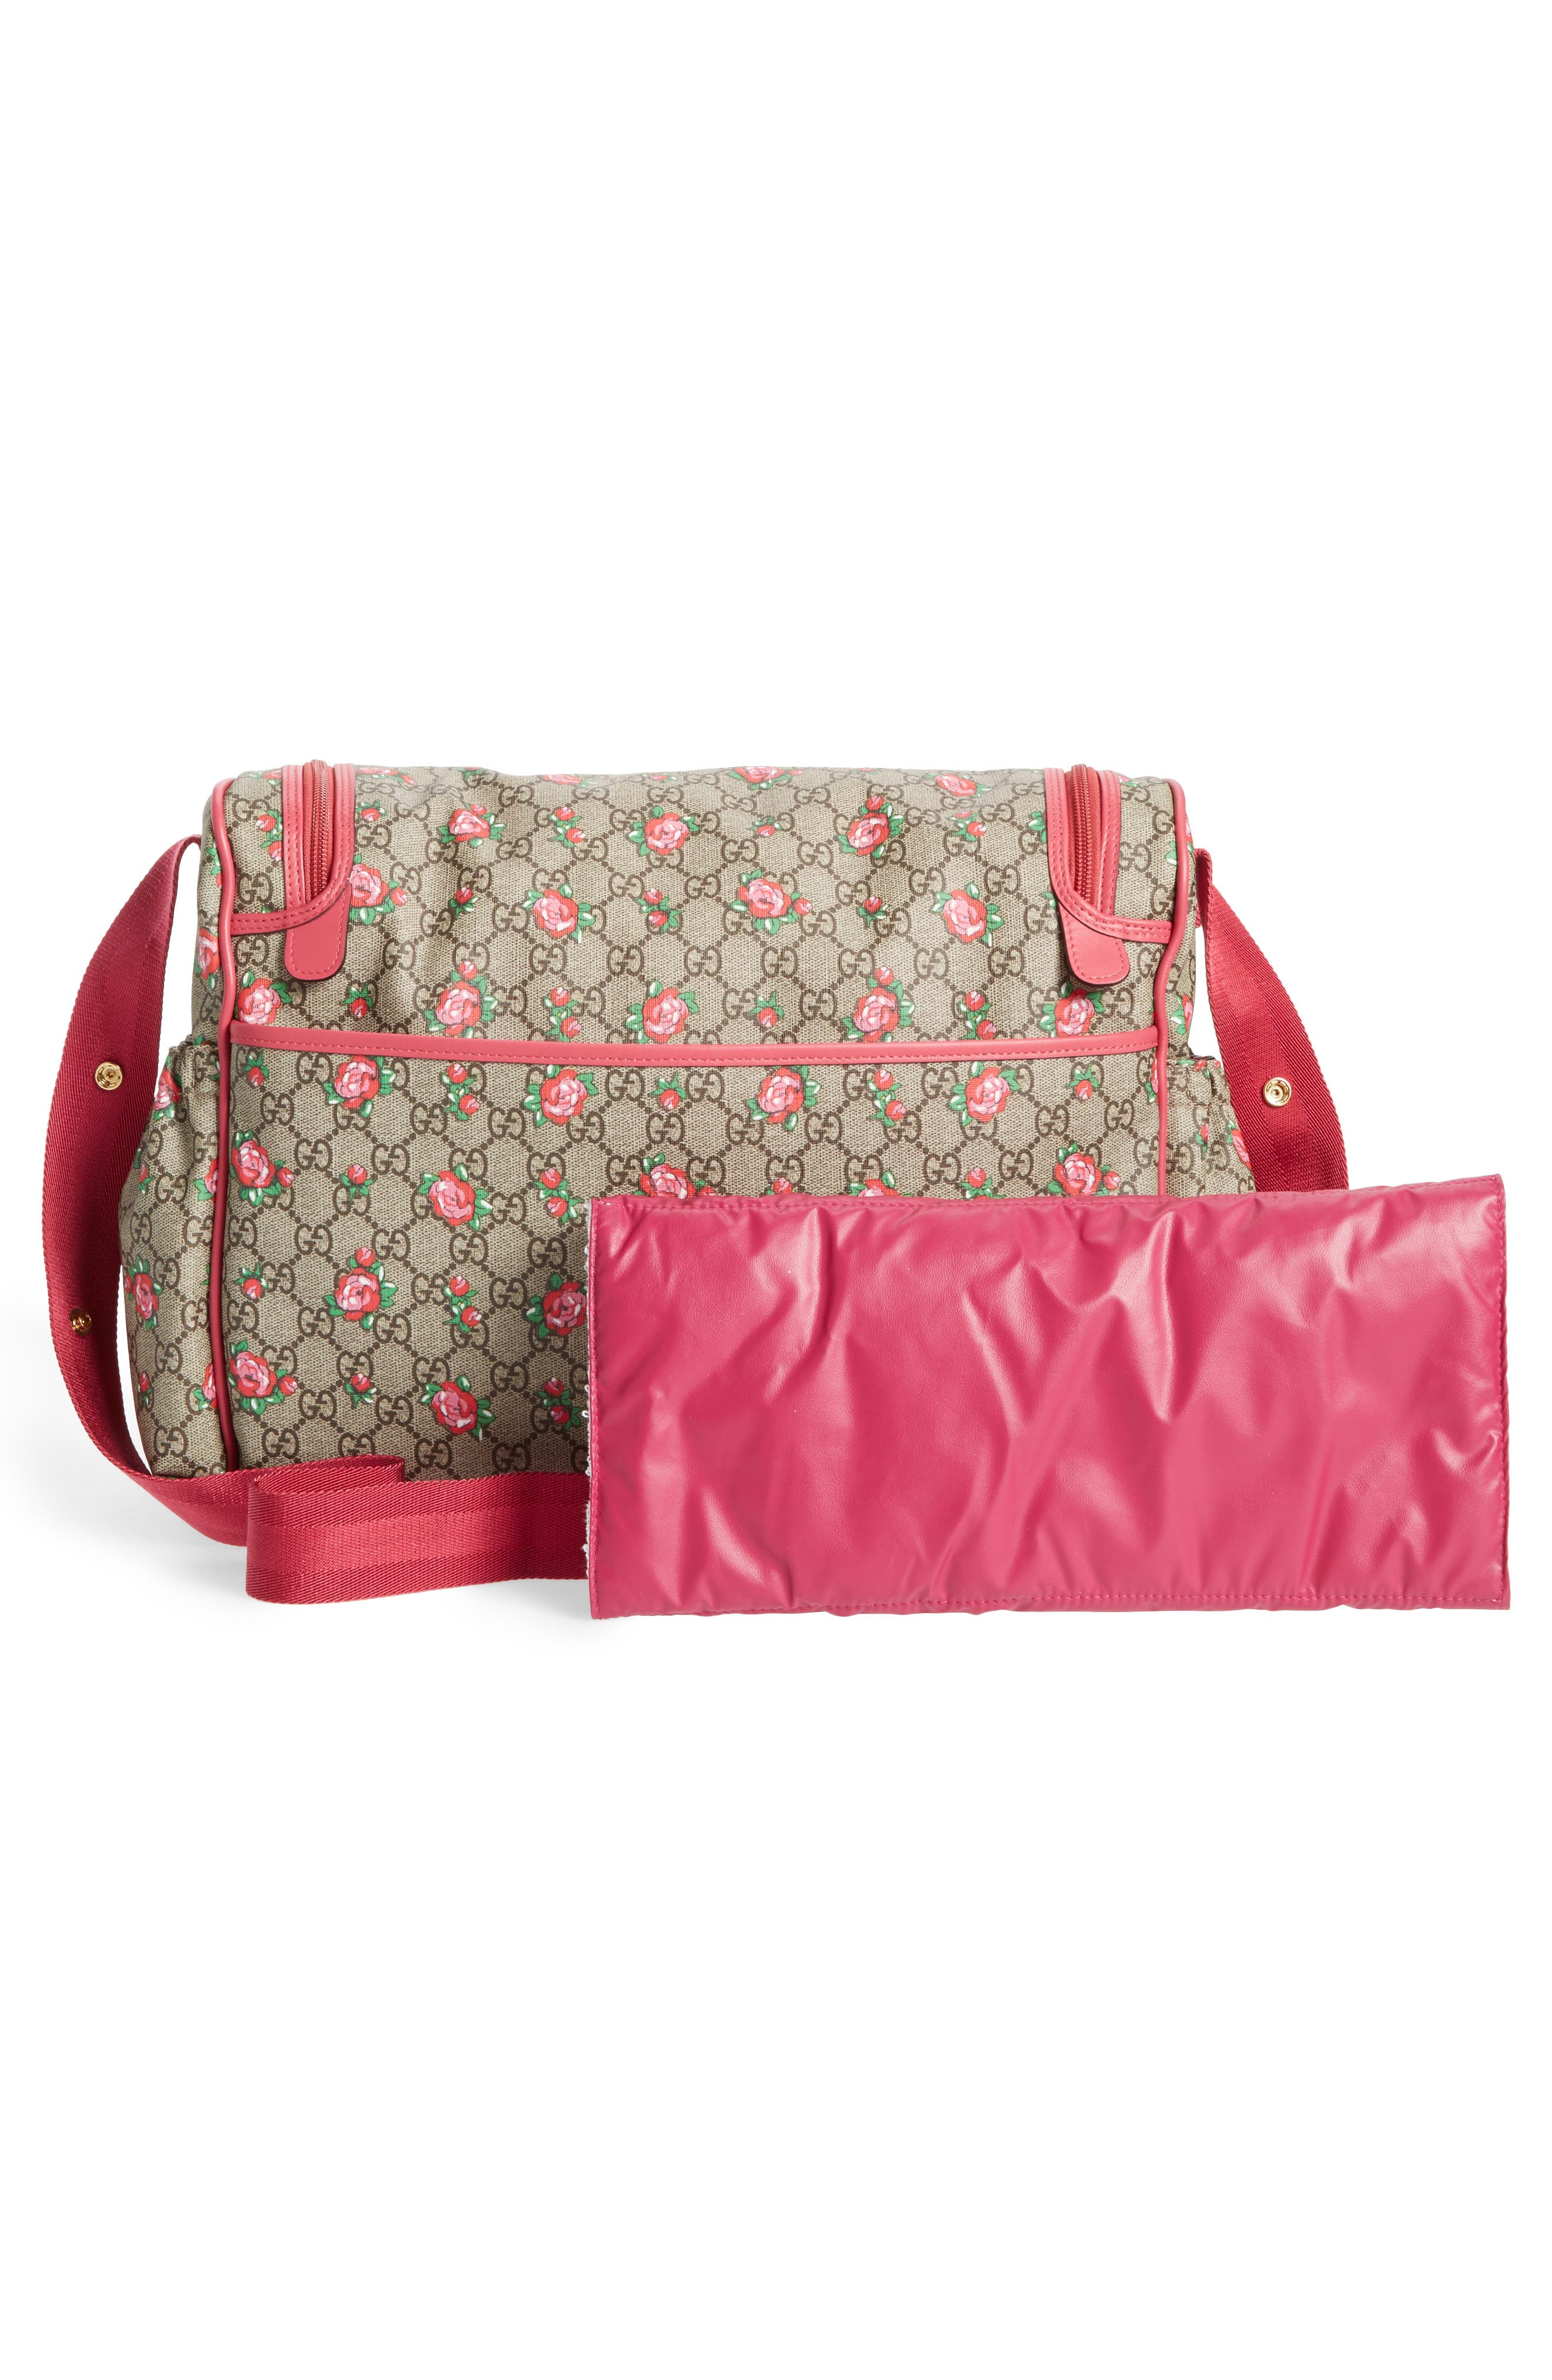 Alternate Image 3  - Gucci Rose Bud GG Supreme Diaper Bag